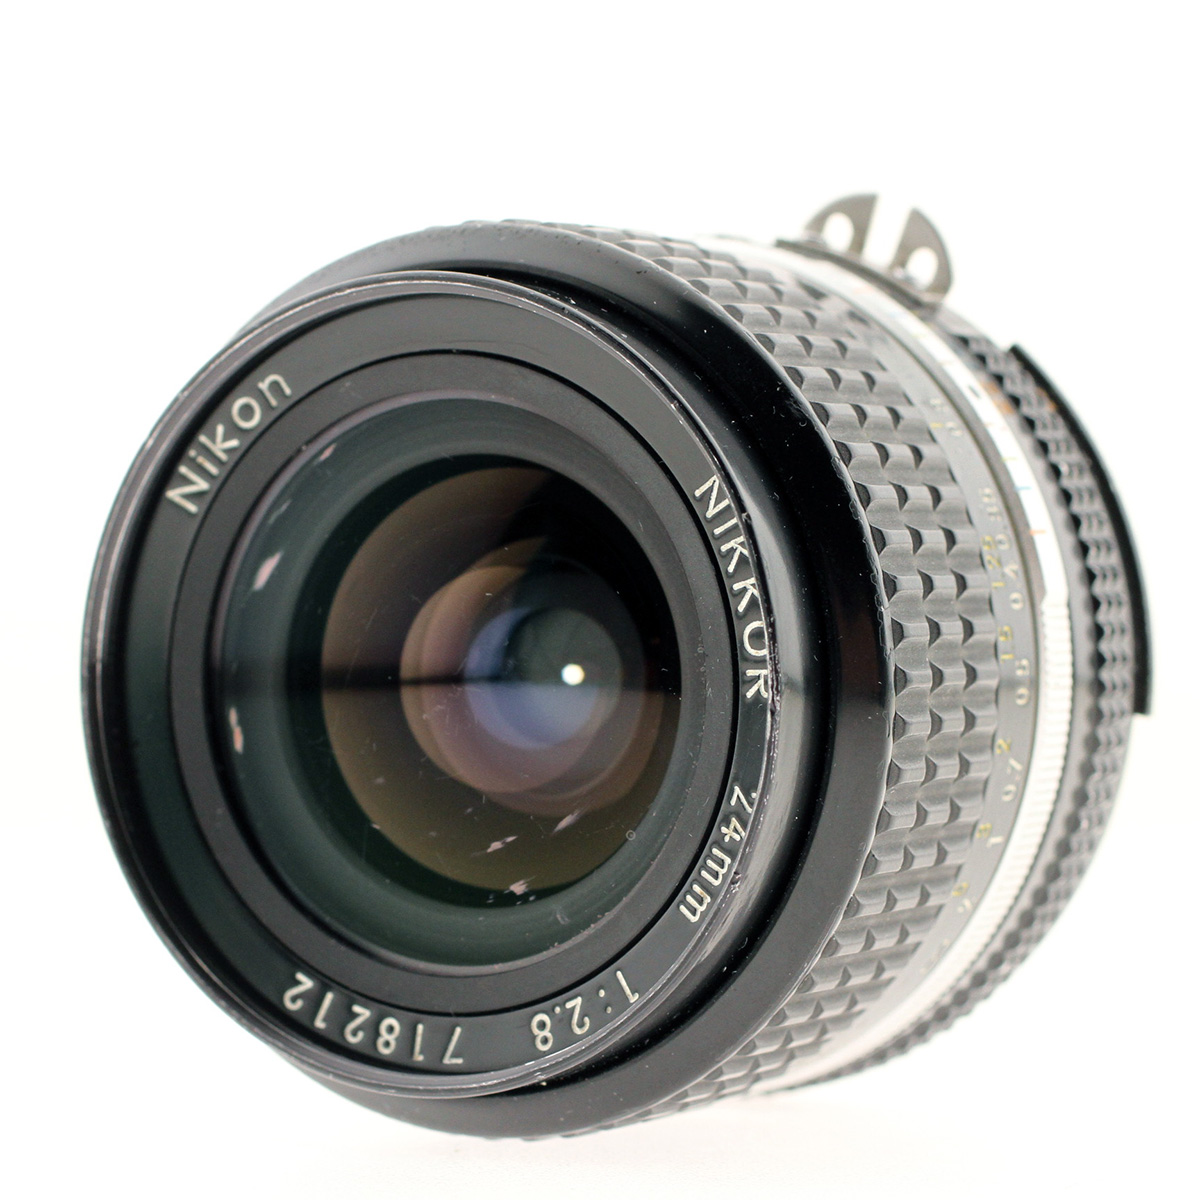 USED 24MM F2.8 AIS NIKON LENS